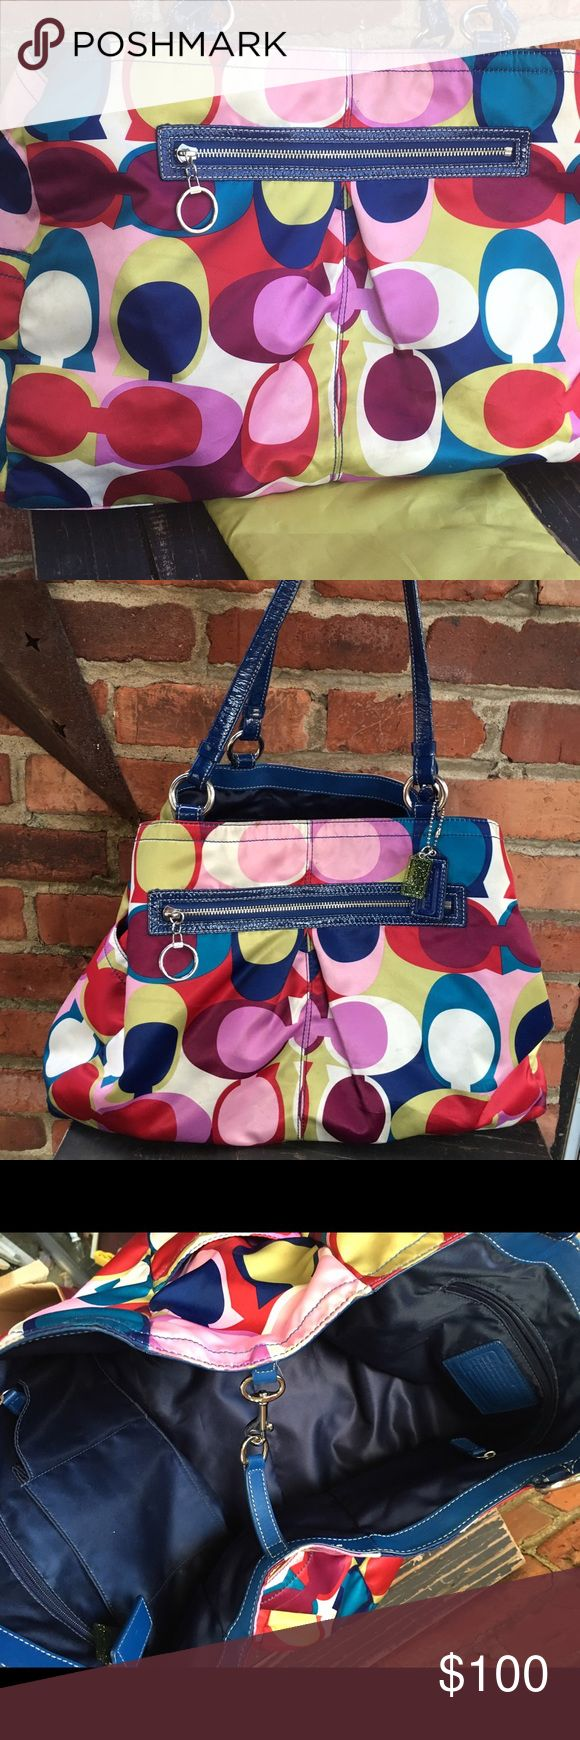 COACH diaper bag with changing pad Beautiful multi color diaper bag with changing pad Coach Bags Baby Bags